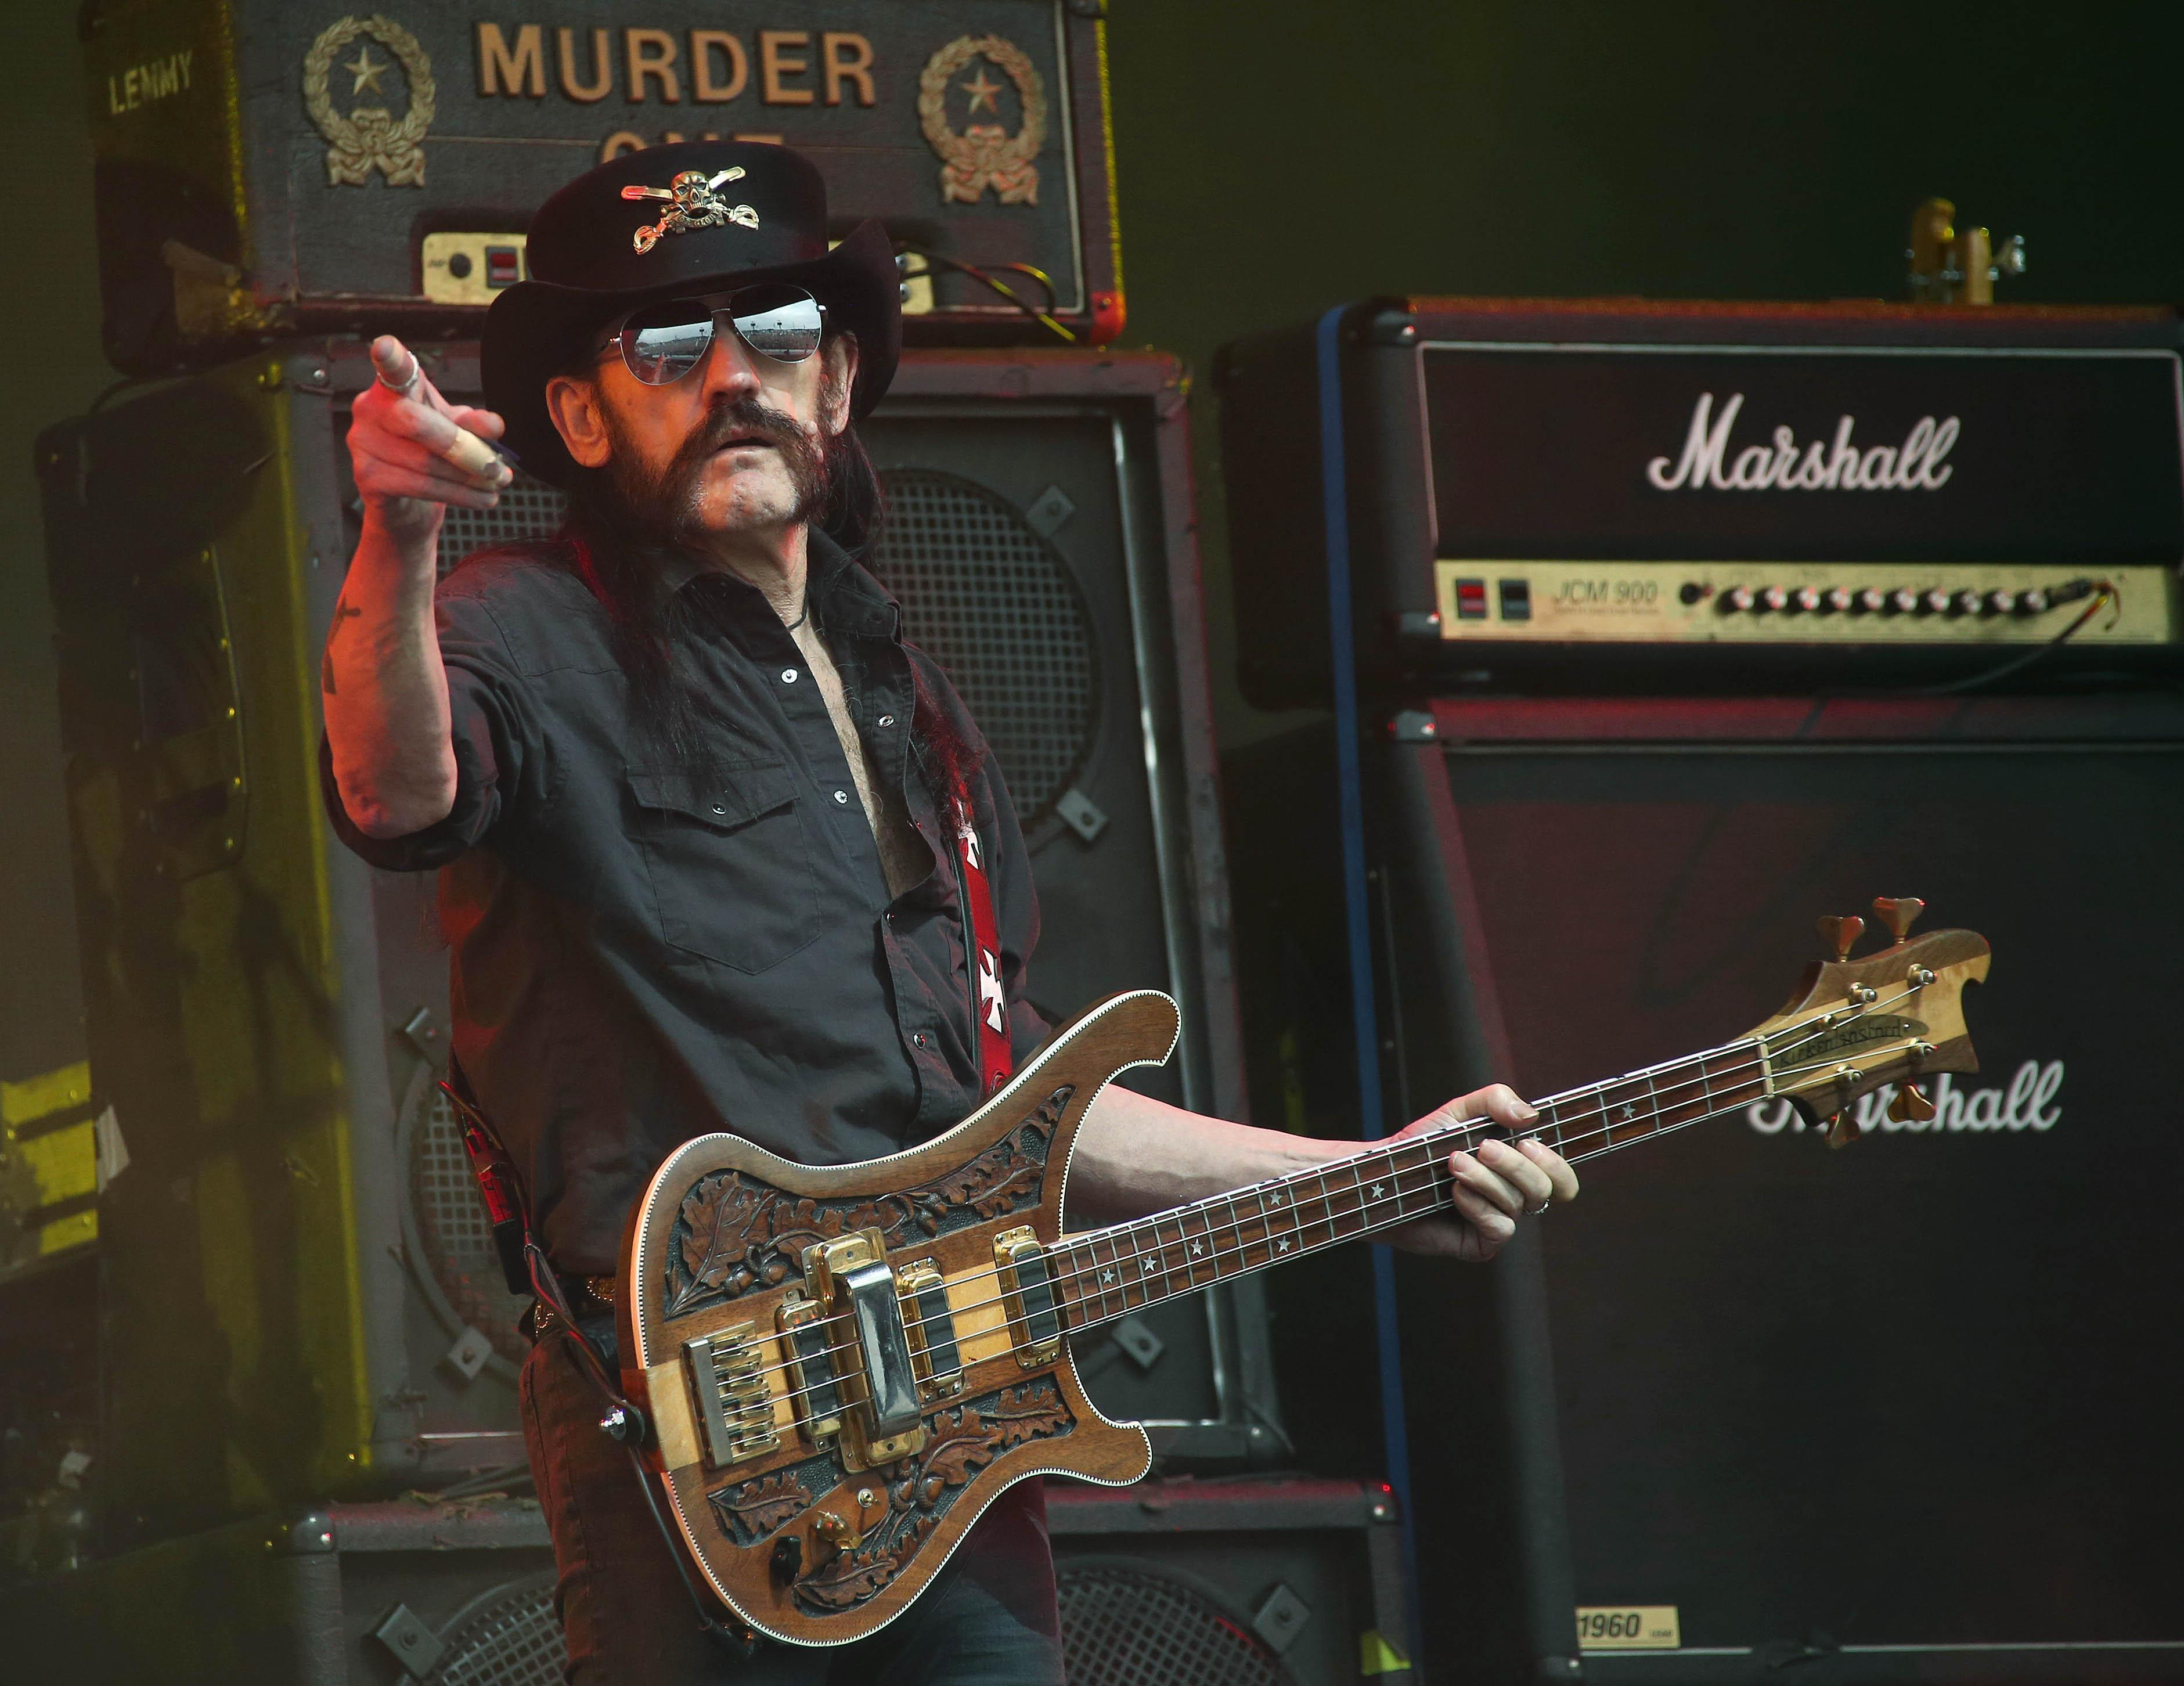 Aftershock: Remembering My Time With Lemmy Kilmister